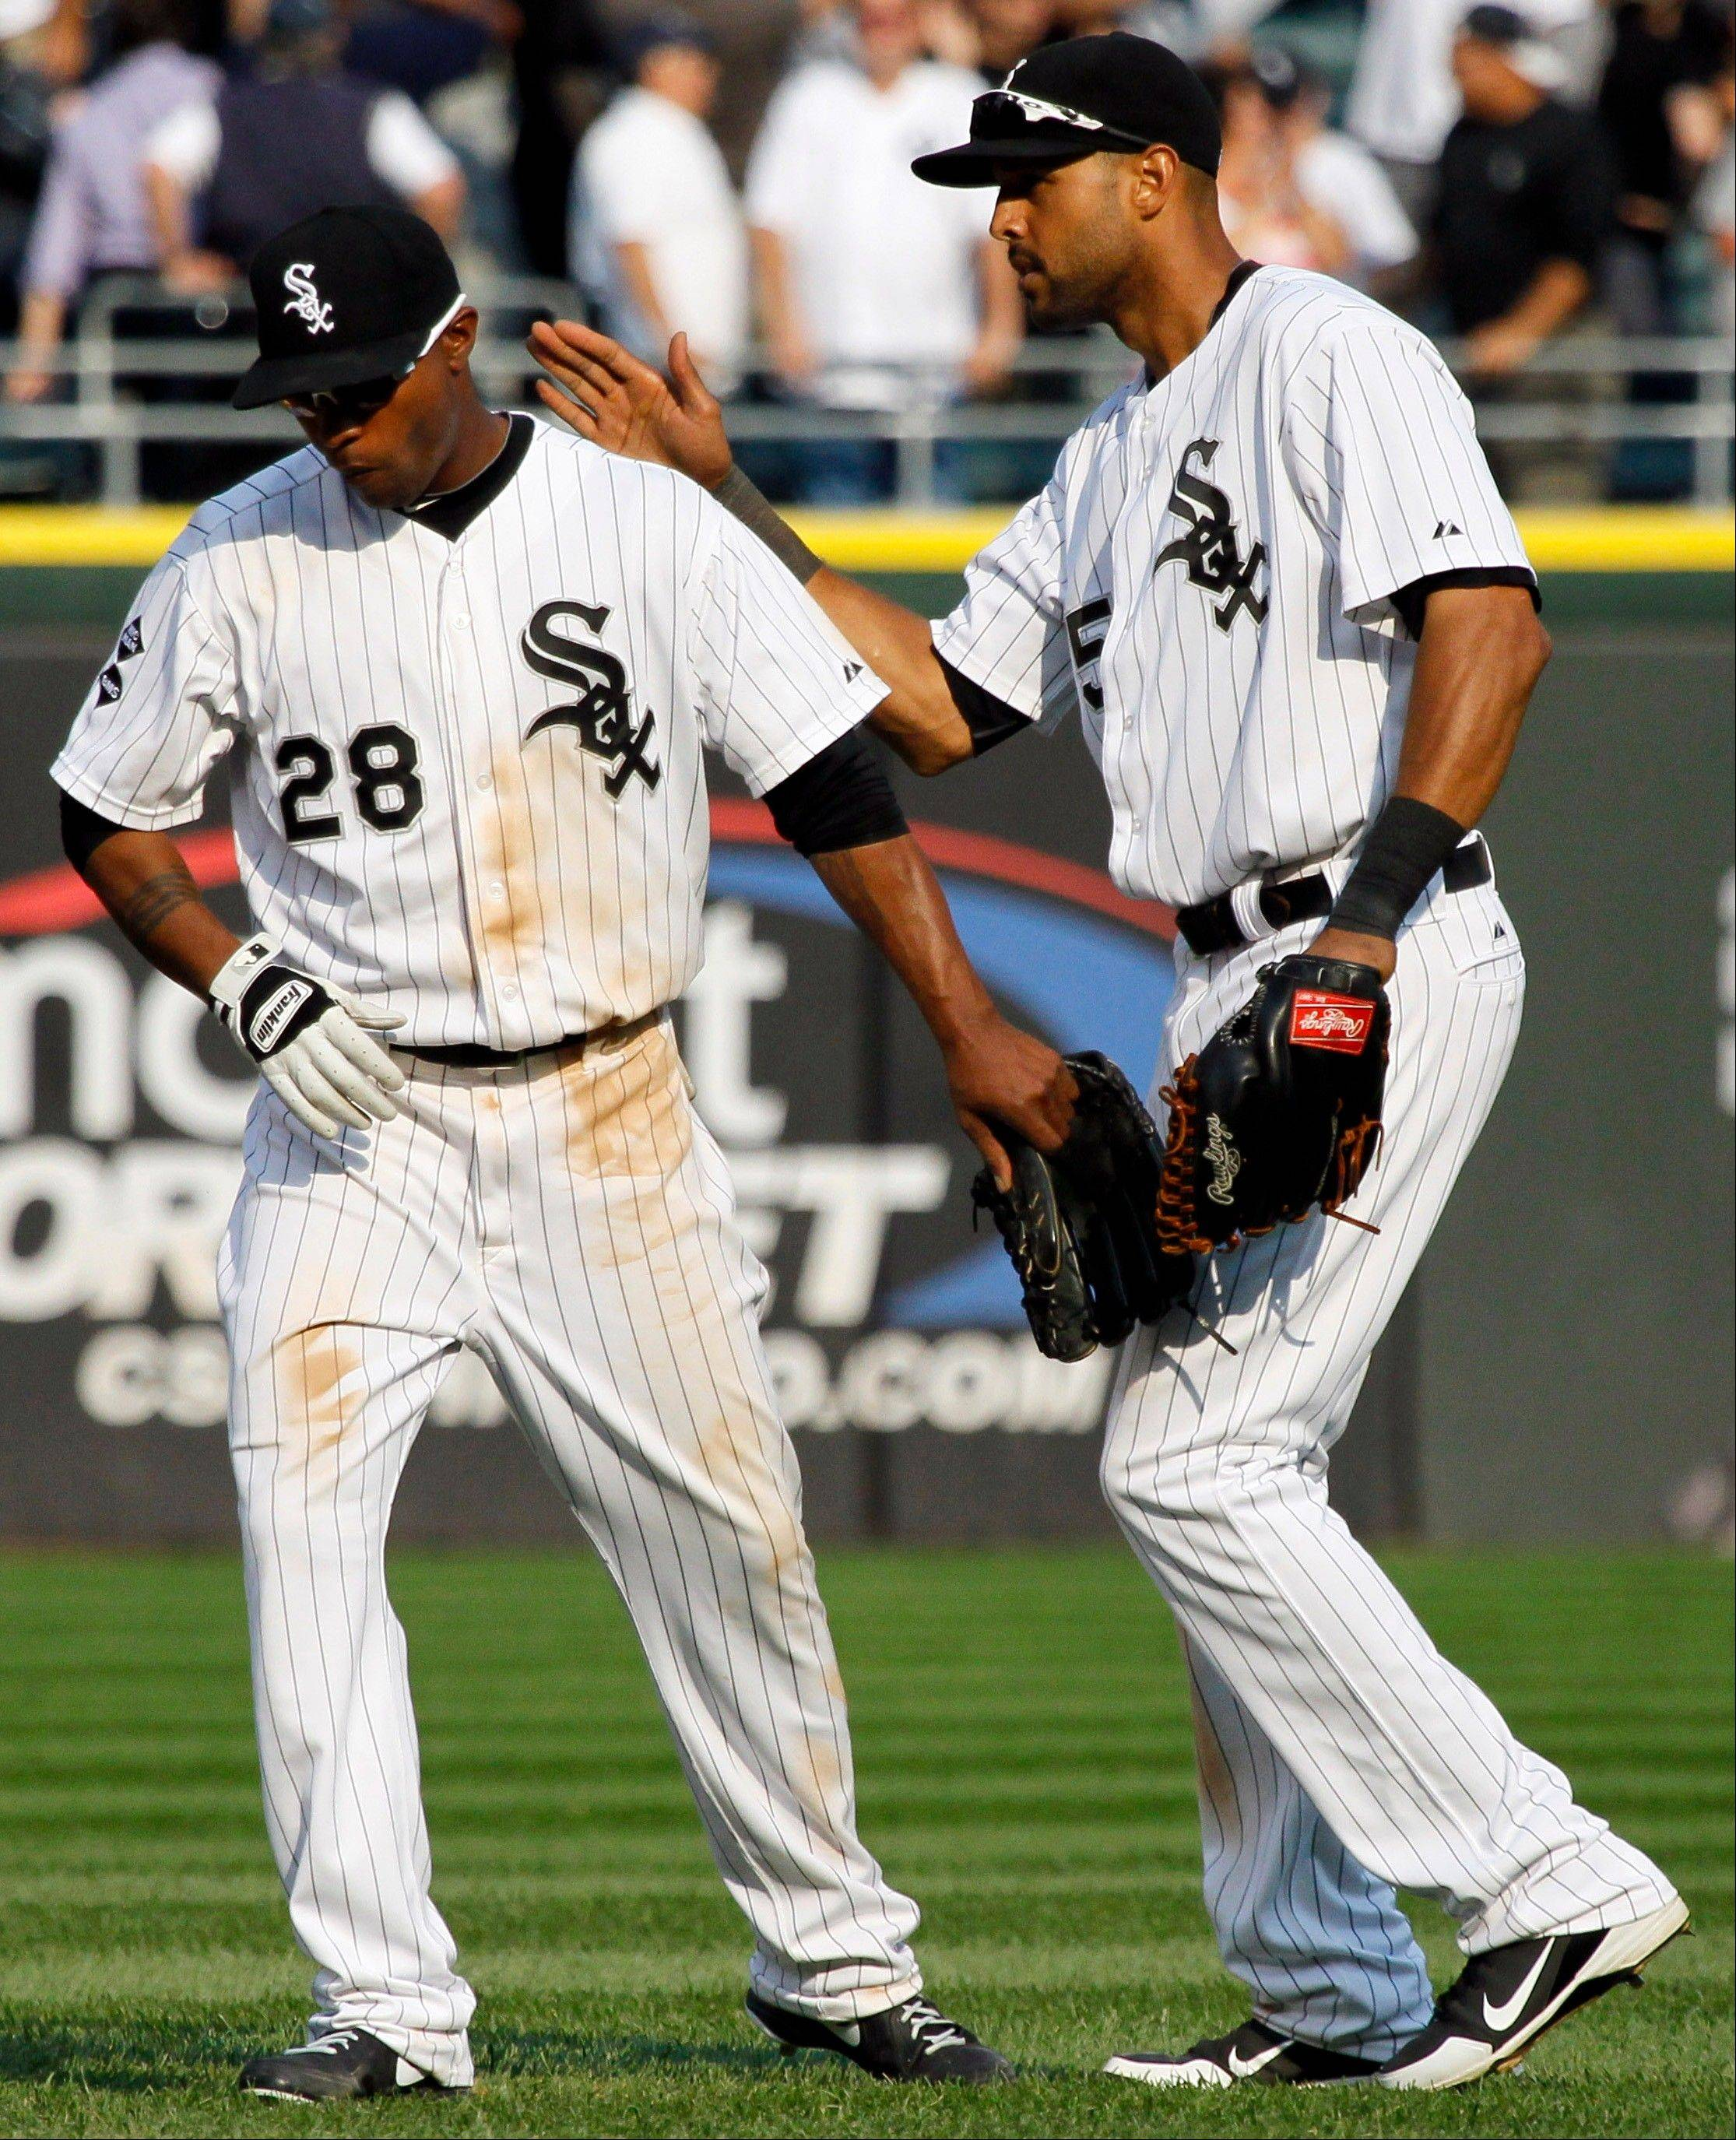 White Sox right fielder Alex Rios pats center fielder Dewayne Wise on the back after Monday's victory over the Detroit Tigers at U.S. Cellular Field.